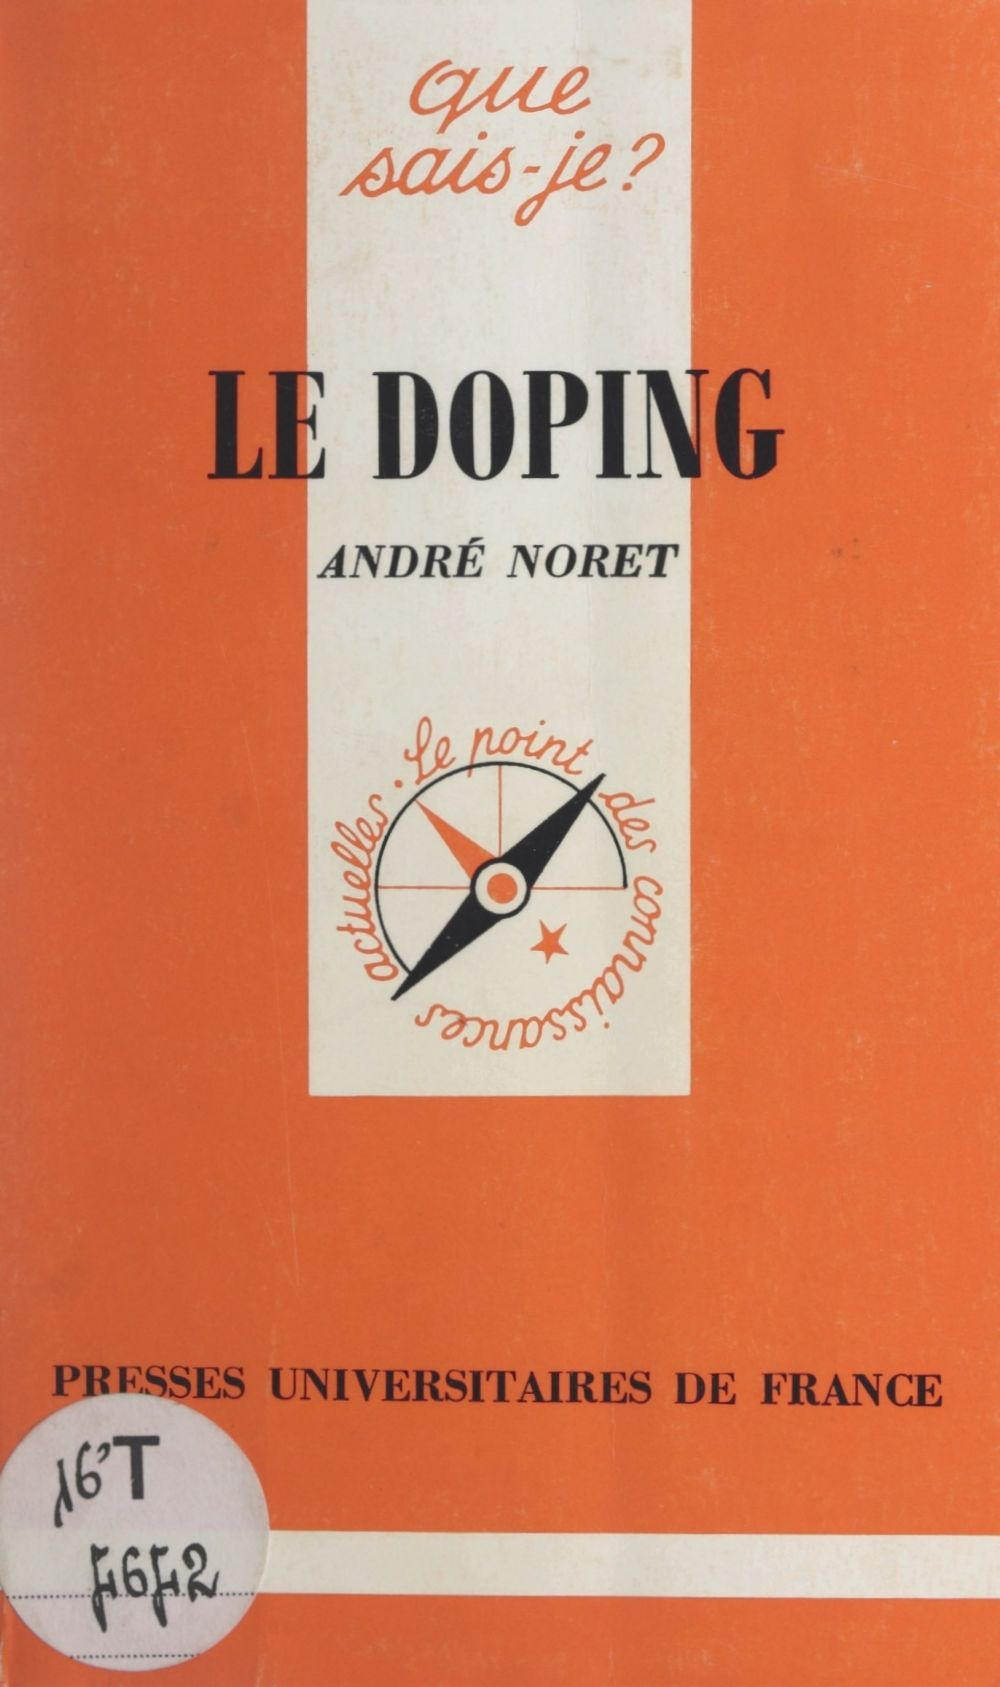 Le doping